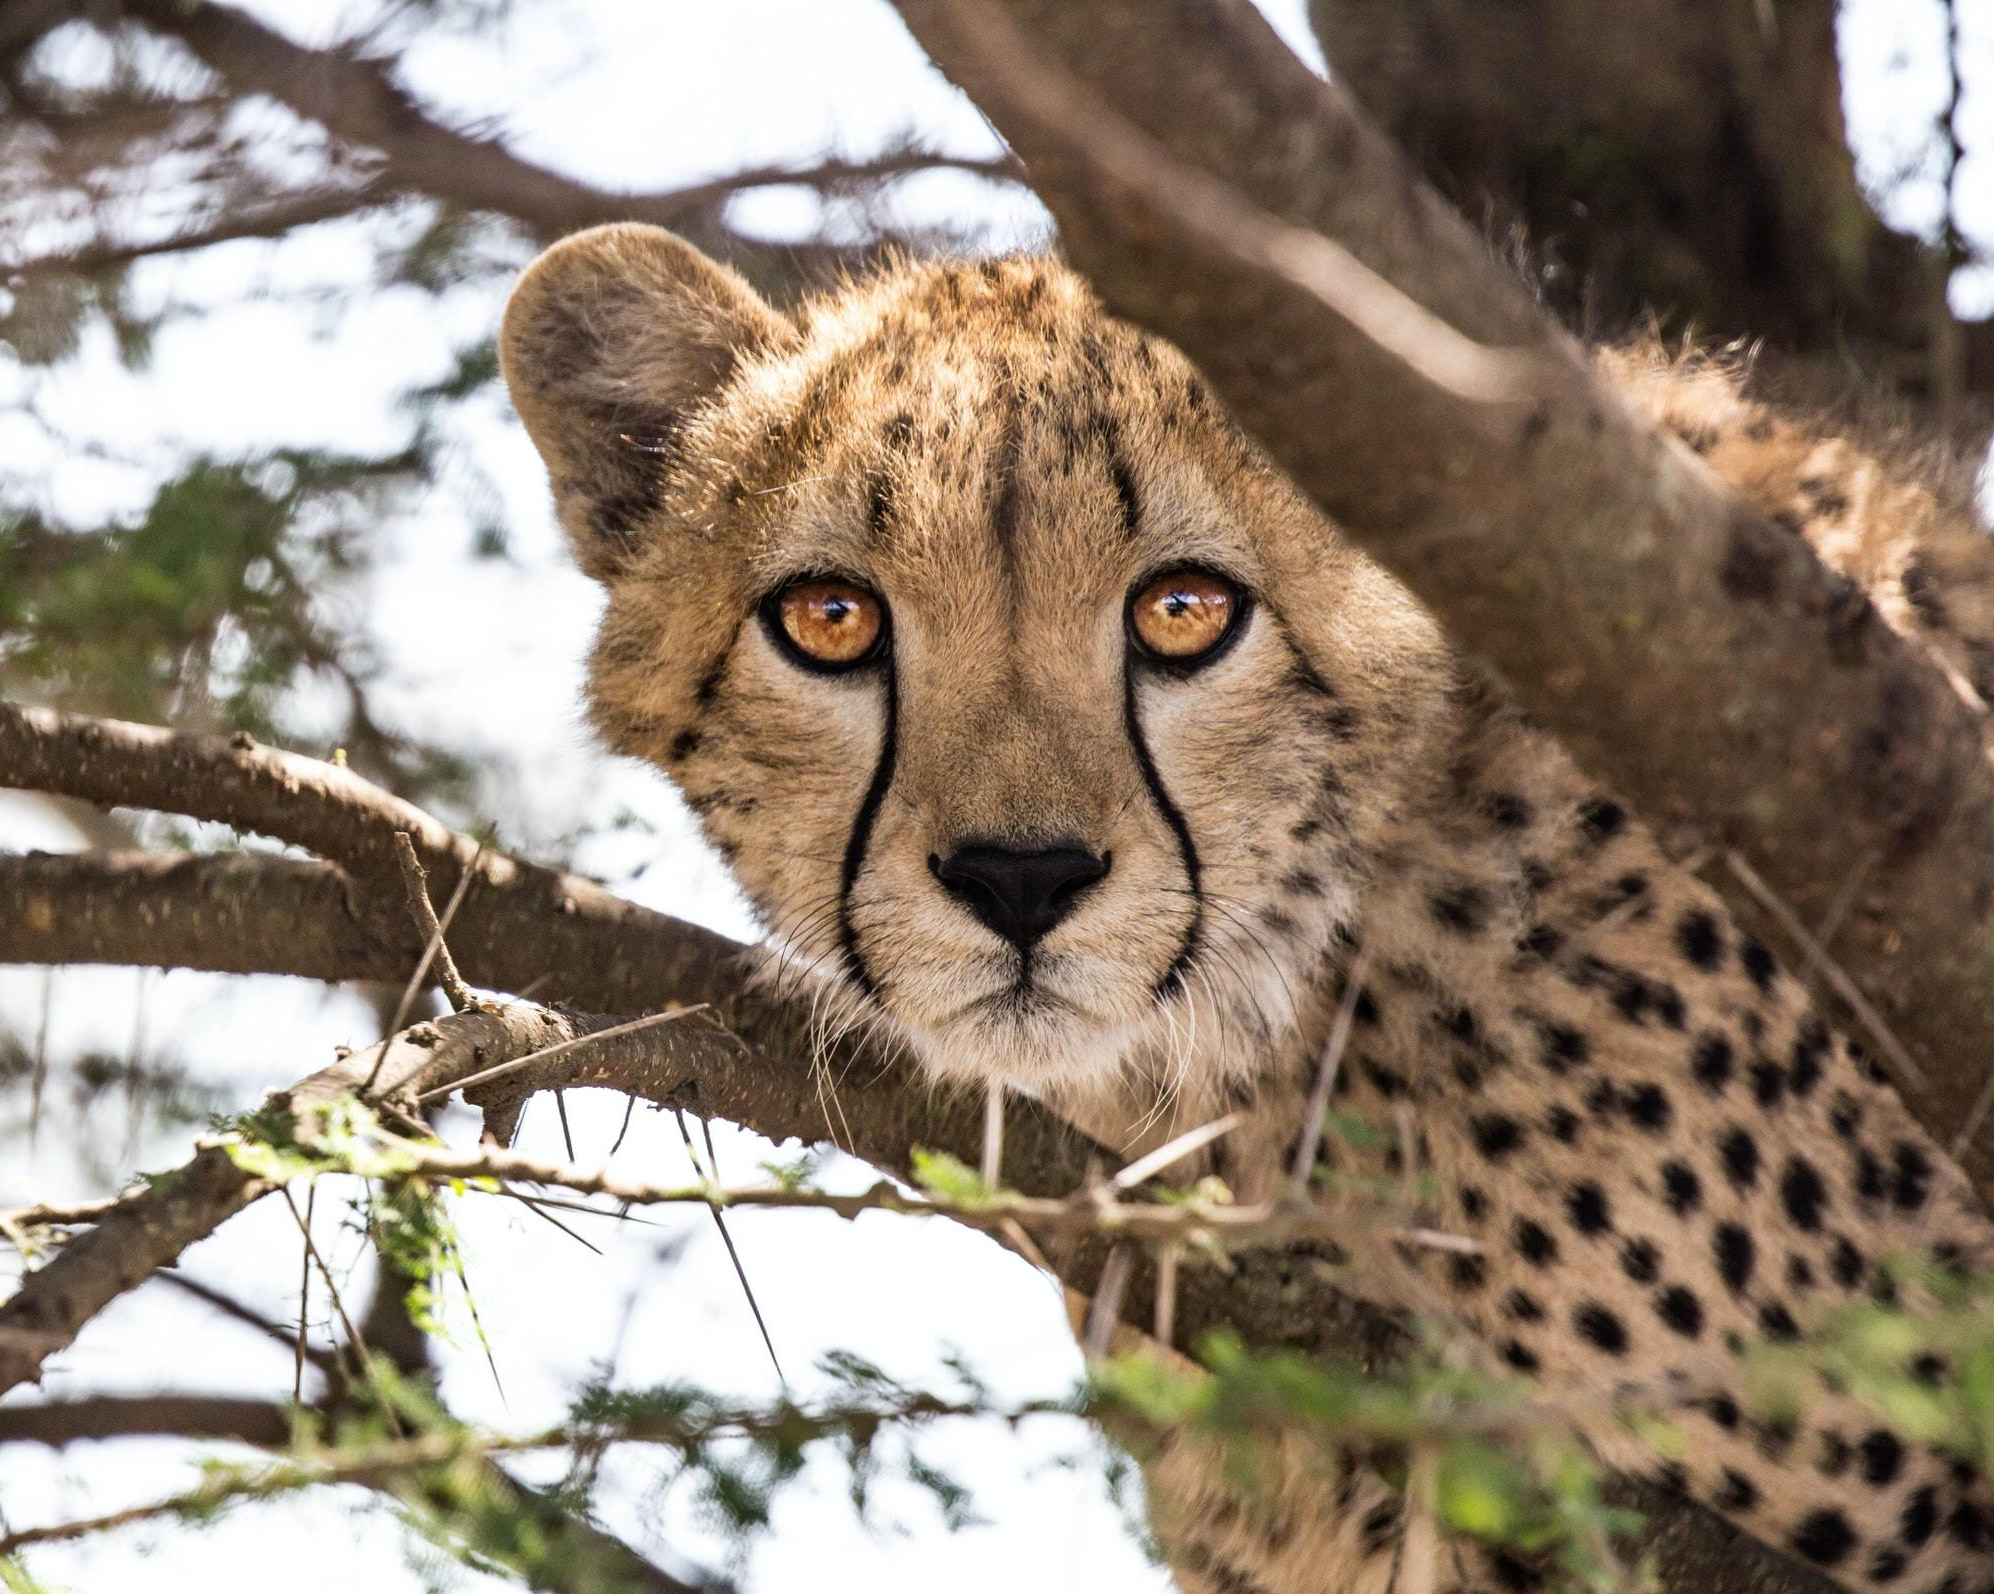 EXPLORING THE SIGHTS & DELIGHTS OF A SOUTH AFRICAN SAFARI